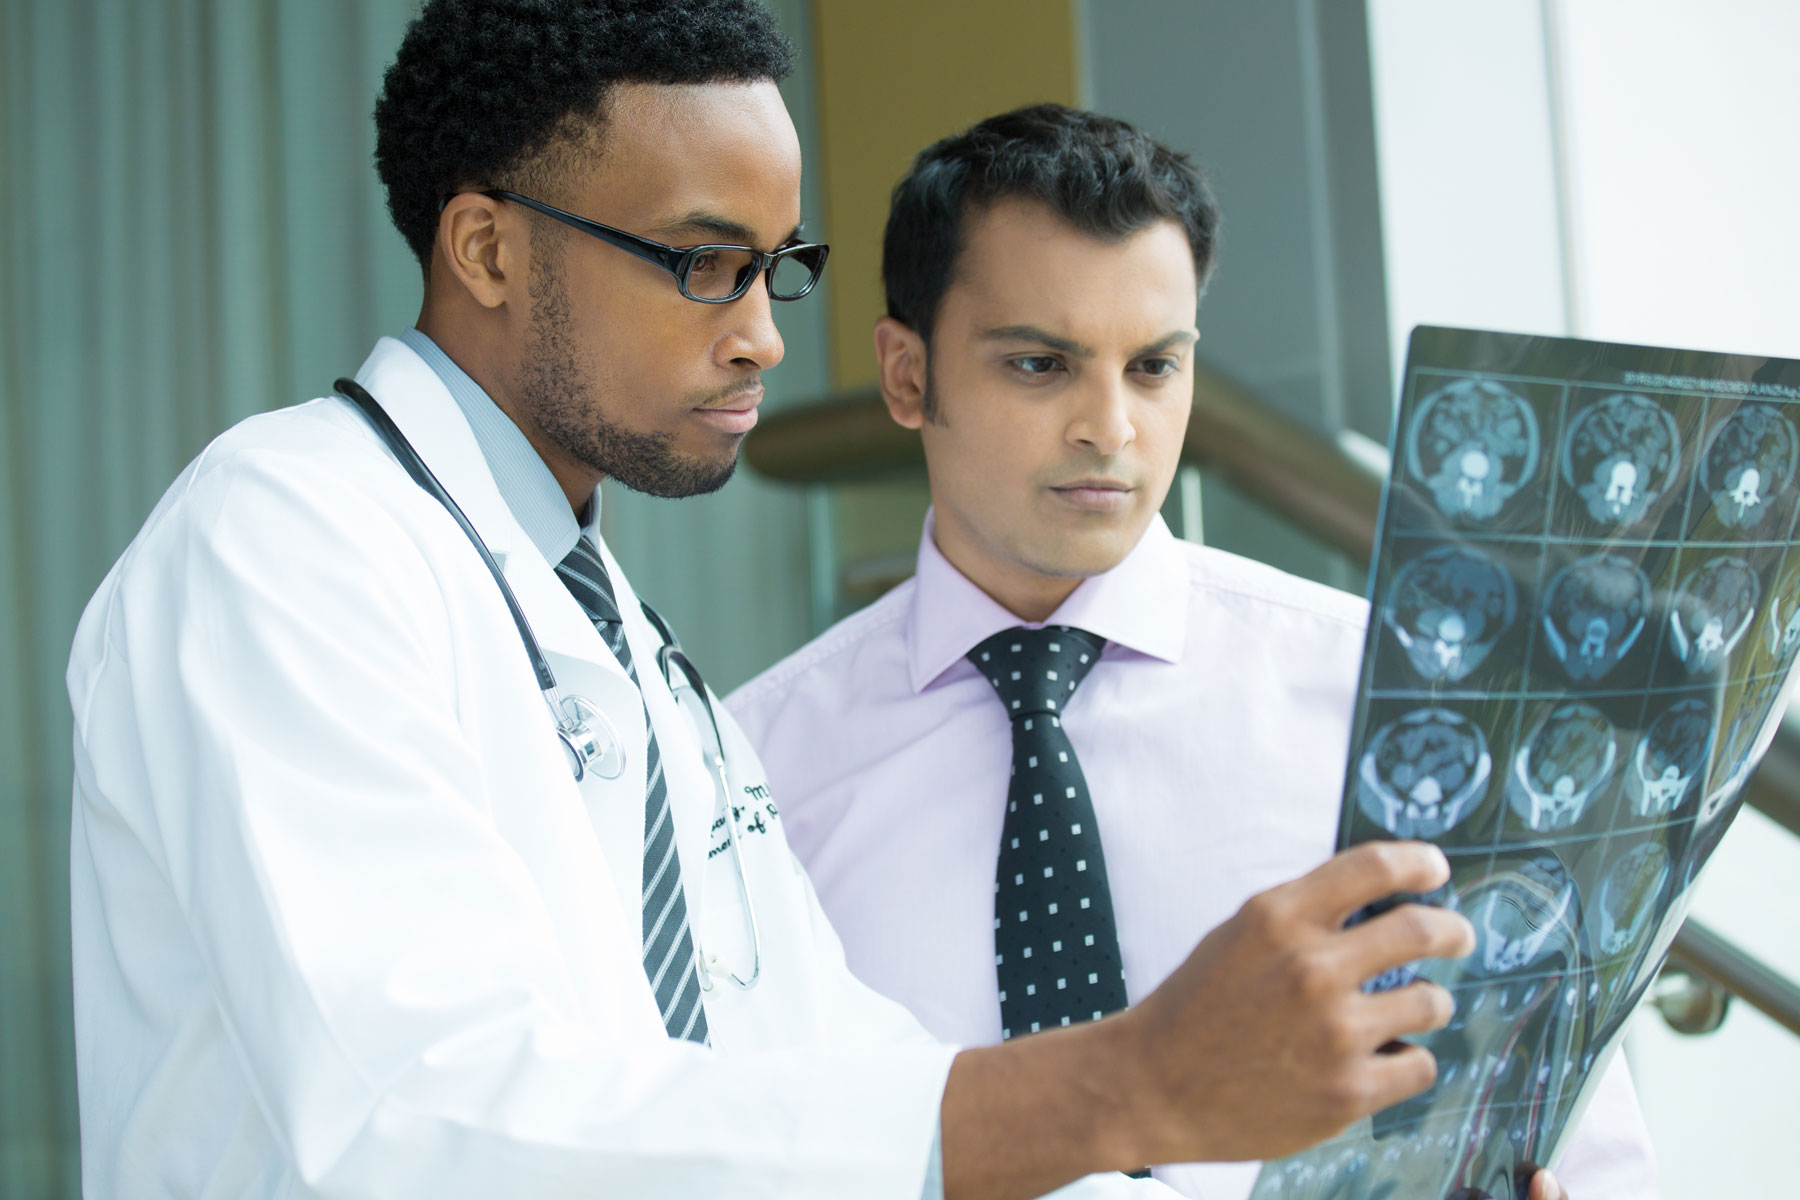 Affordable Medical Imaging in Cincinnati, OH | Affordable MRI Service